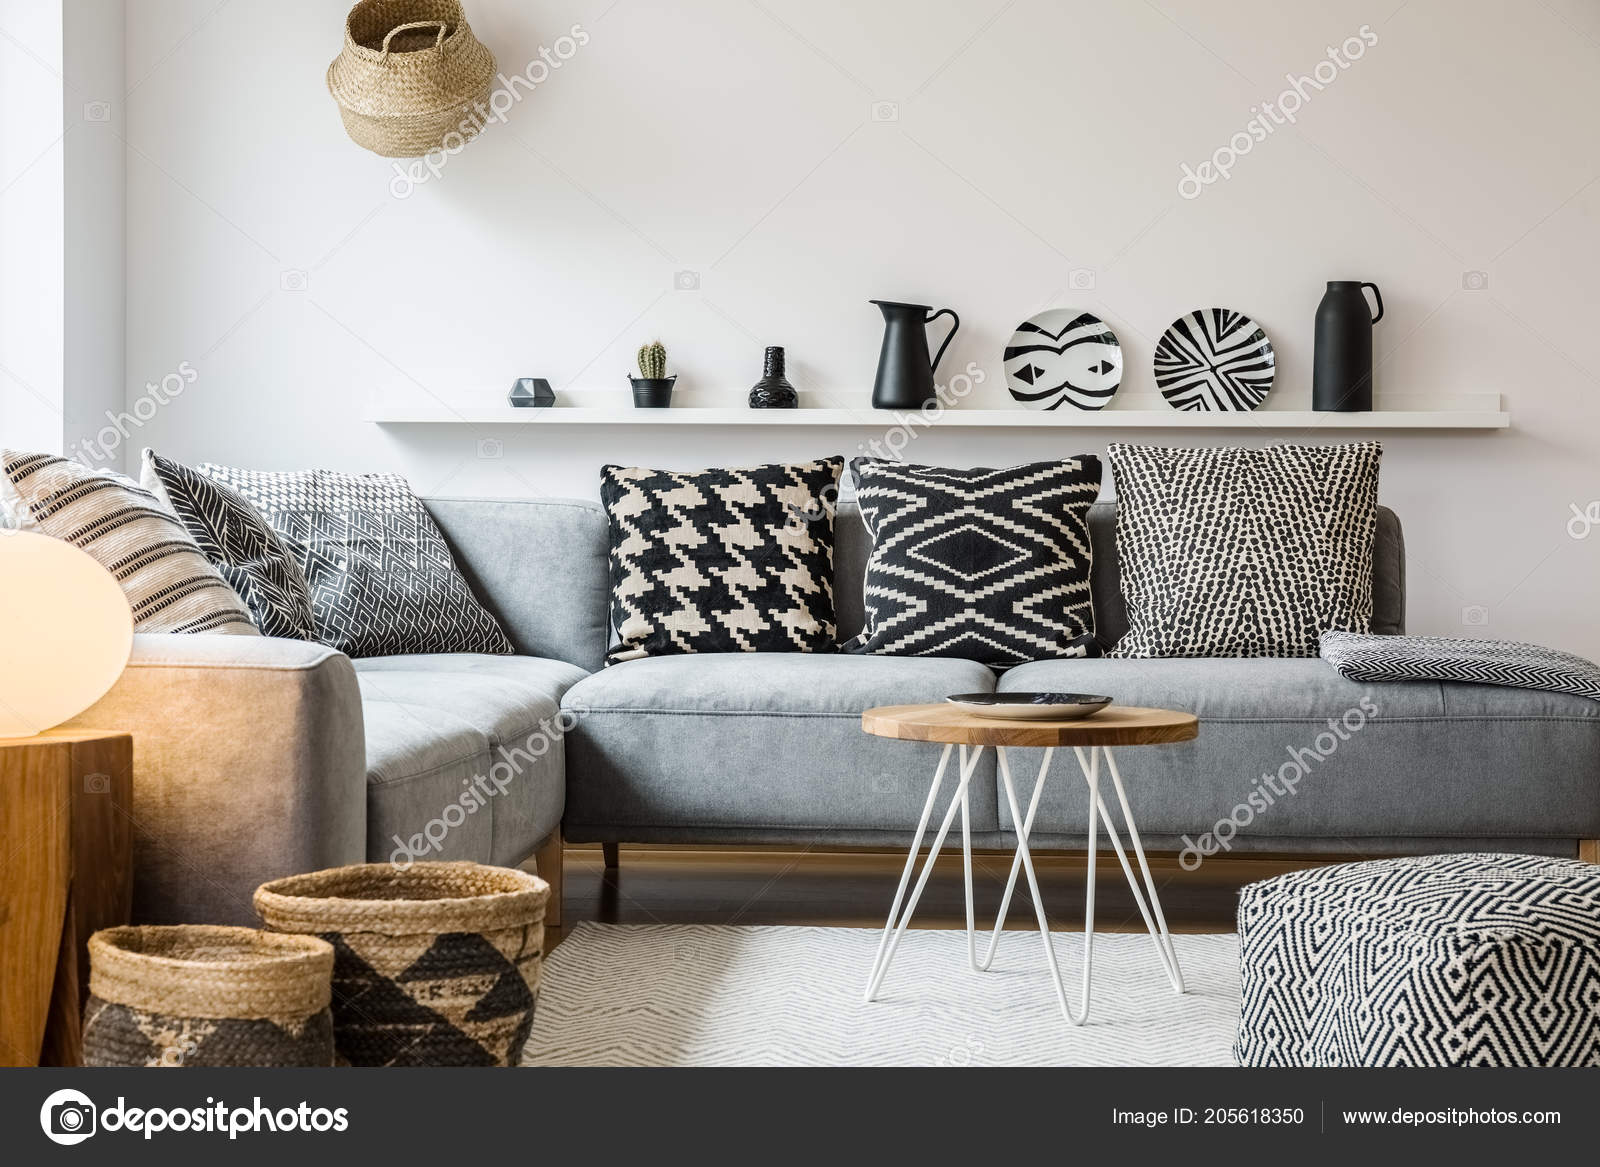 Outstanding Patterned Pillows Grey Couch Modern Living Room Interior Andrewgaddart Wooden Chair Designs For Living Room Andrewgaddartcom